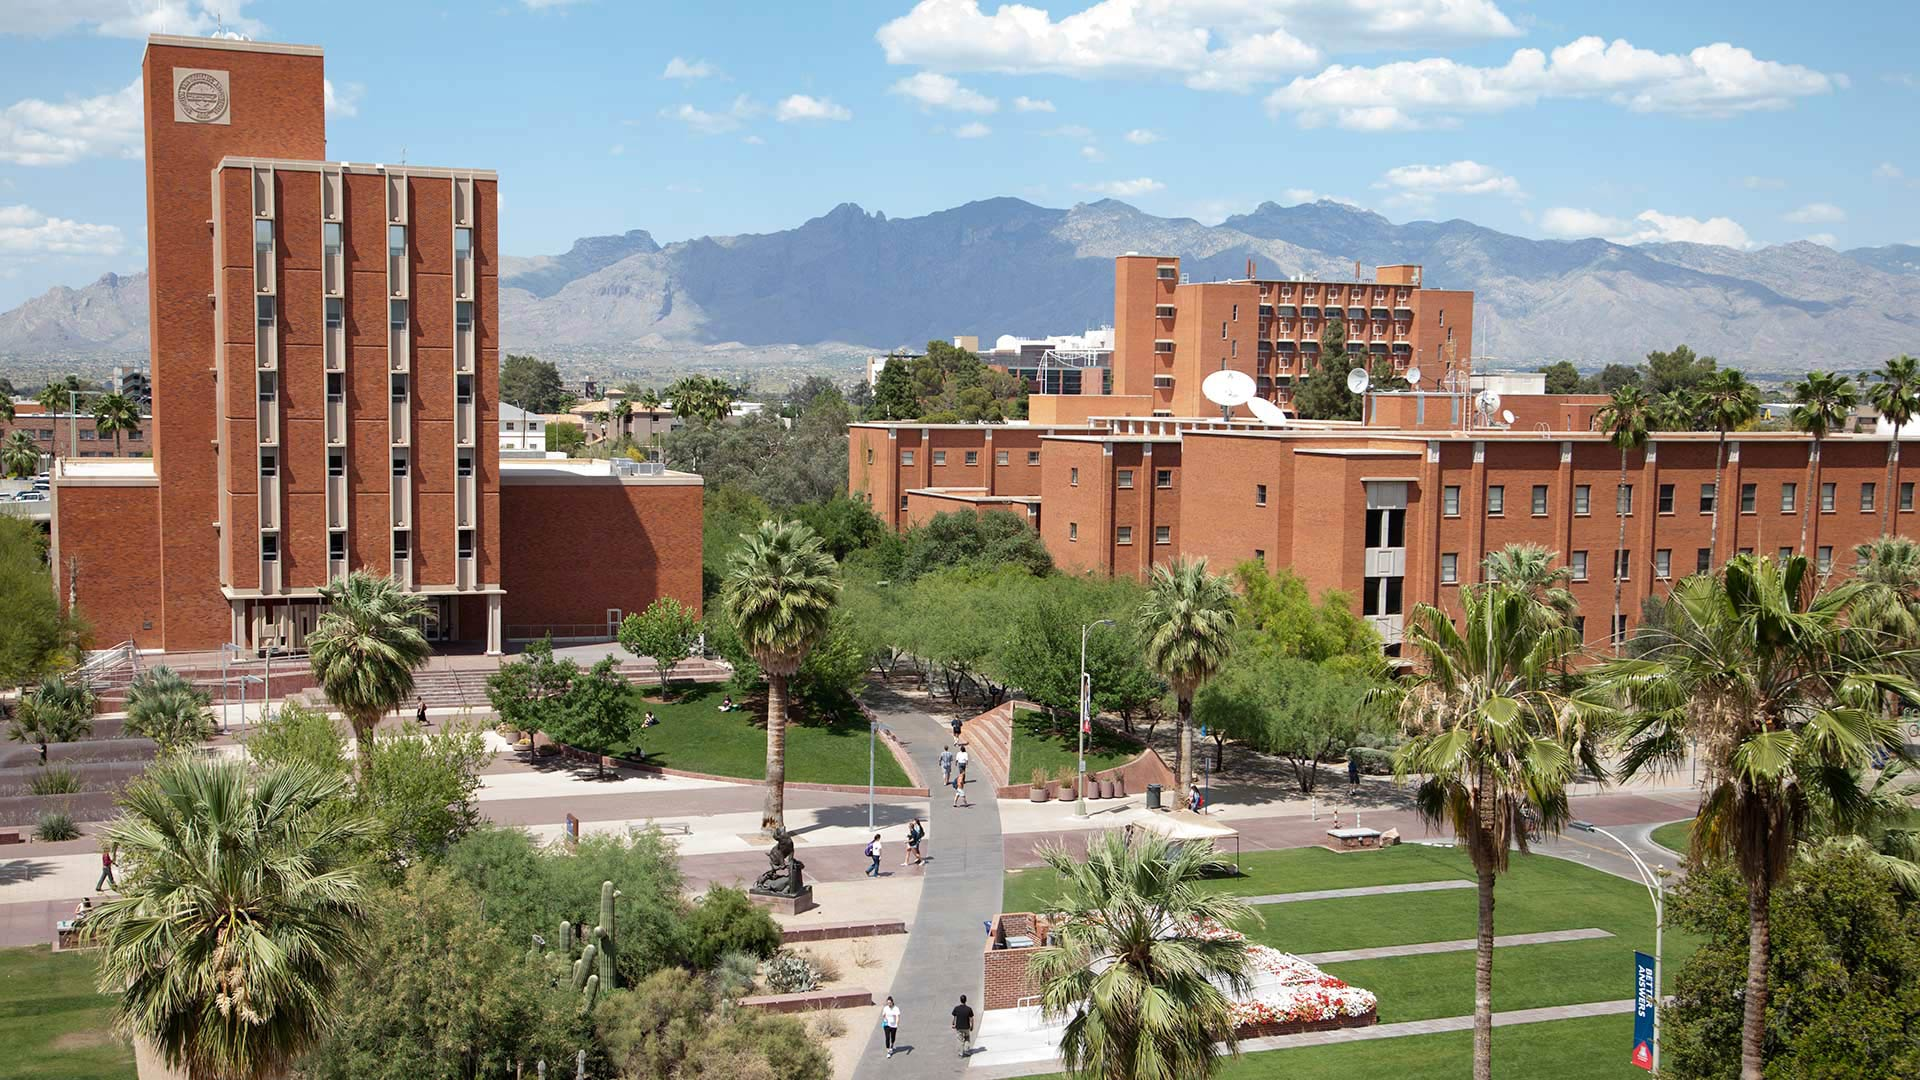 View of the University of Arizona campus.